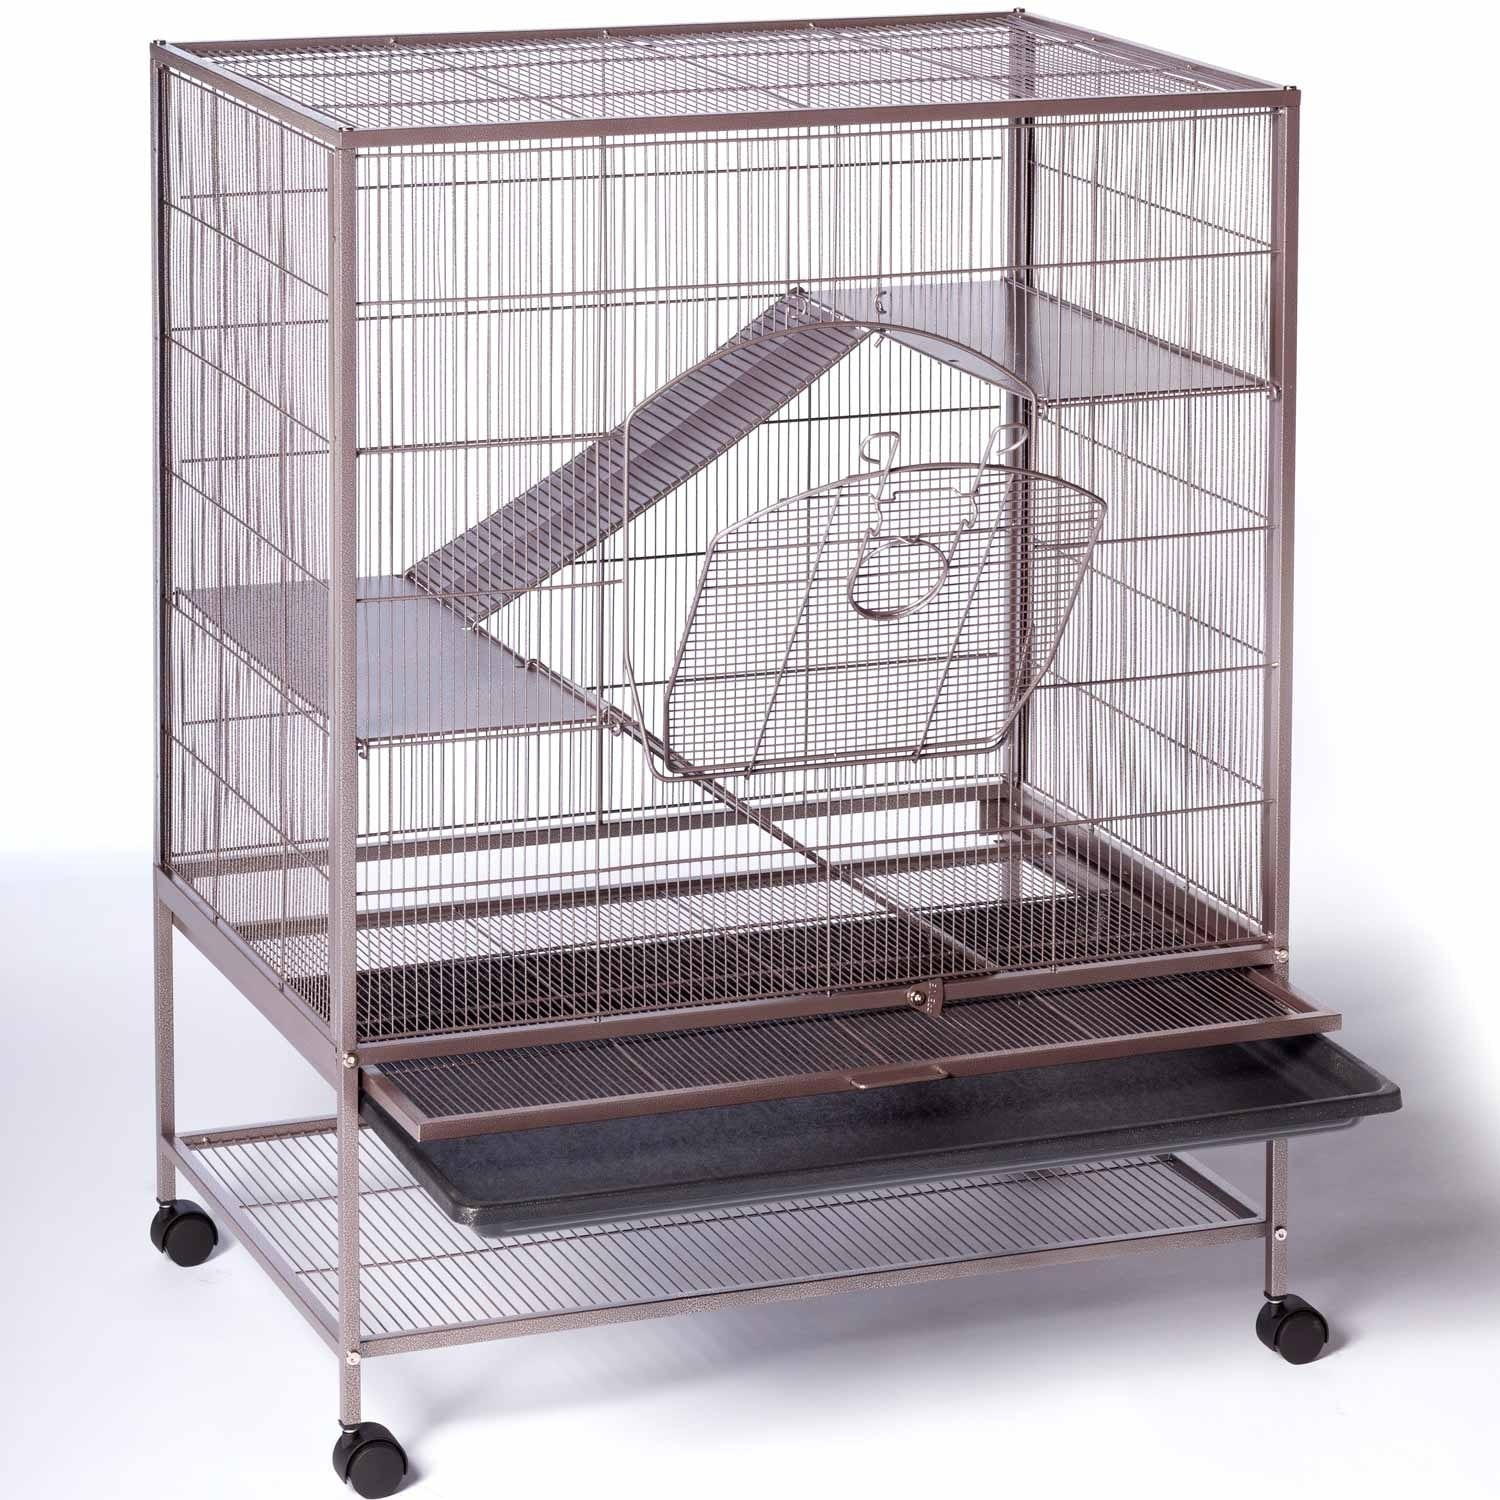 Shop Prevue Pet Products Small Brown Metal Cage with Pull-out Bottom ...